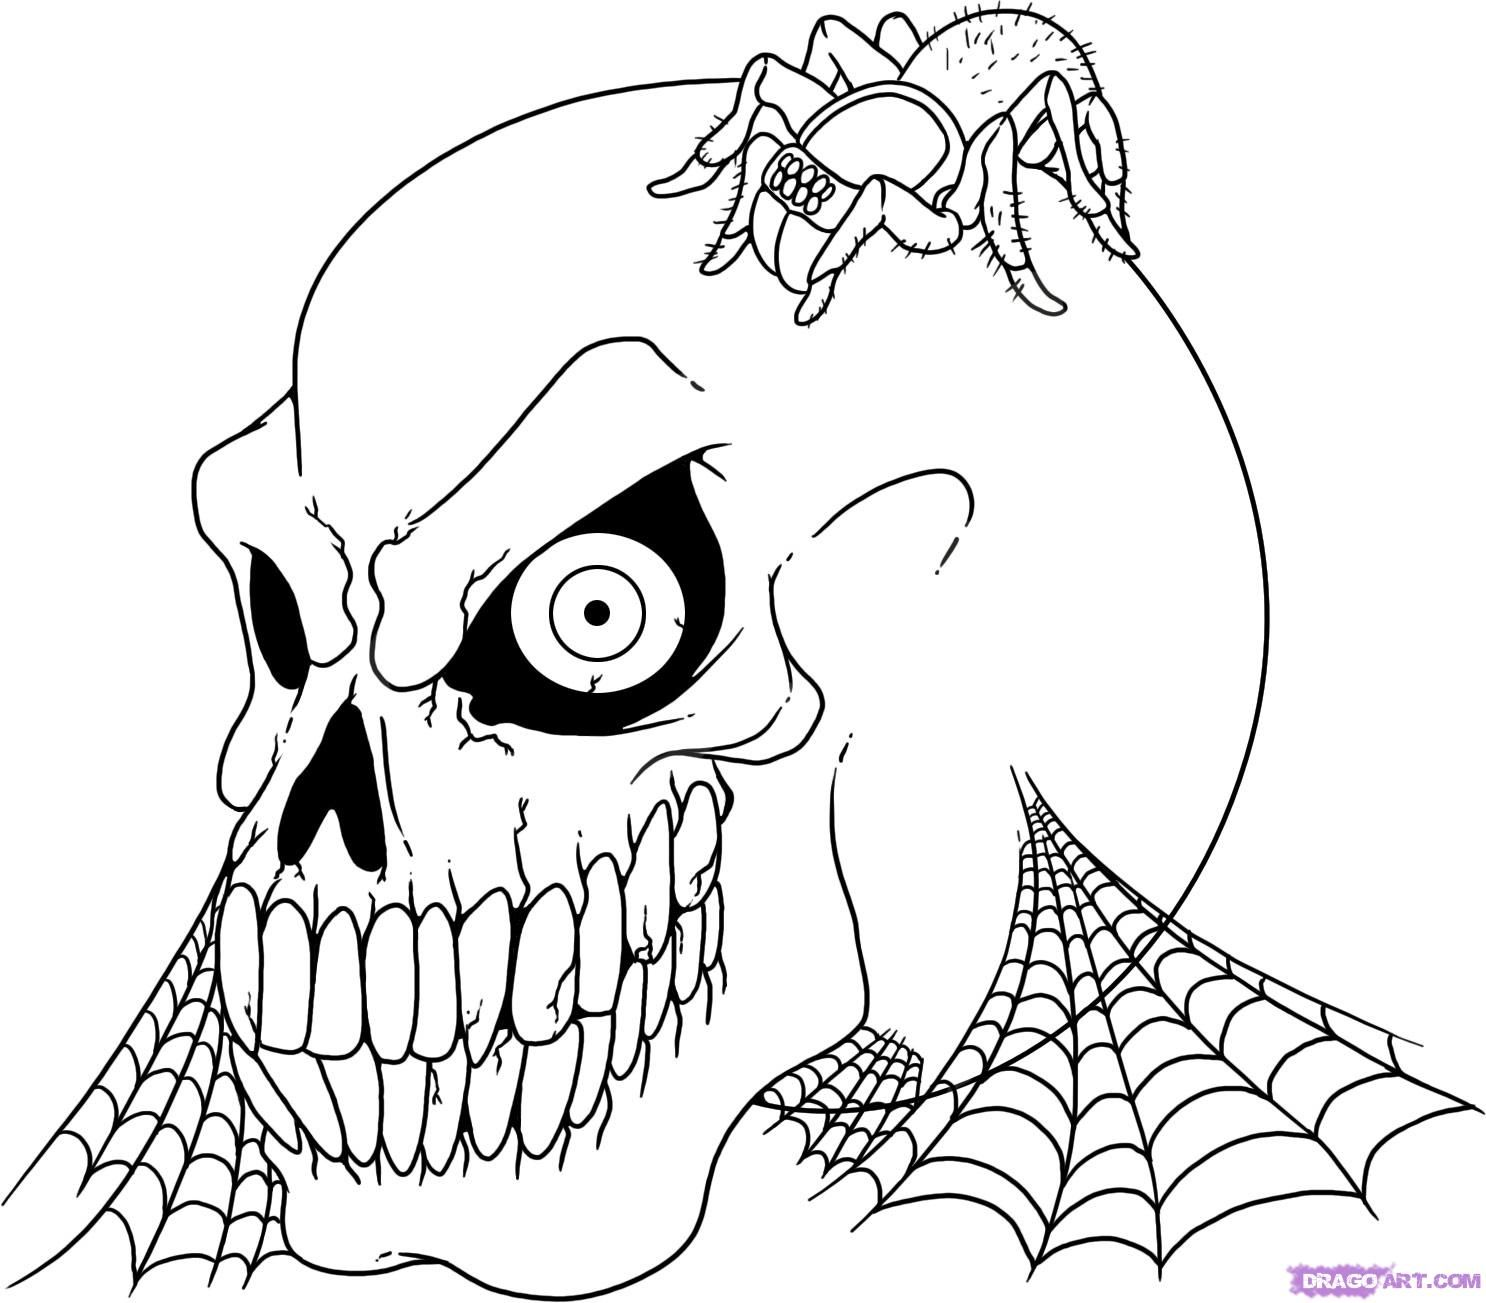 adult vampire coloring pages halloween coloring pages halloween skeleton coloring pages free - Halloween Skeleton Coloring Pages